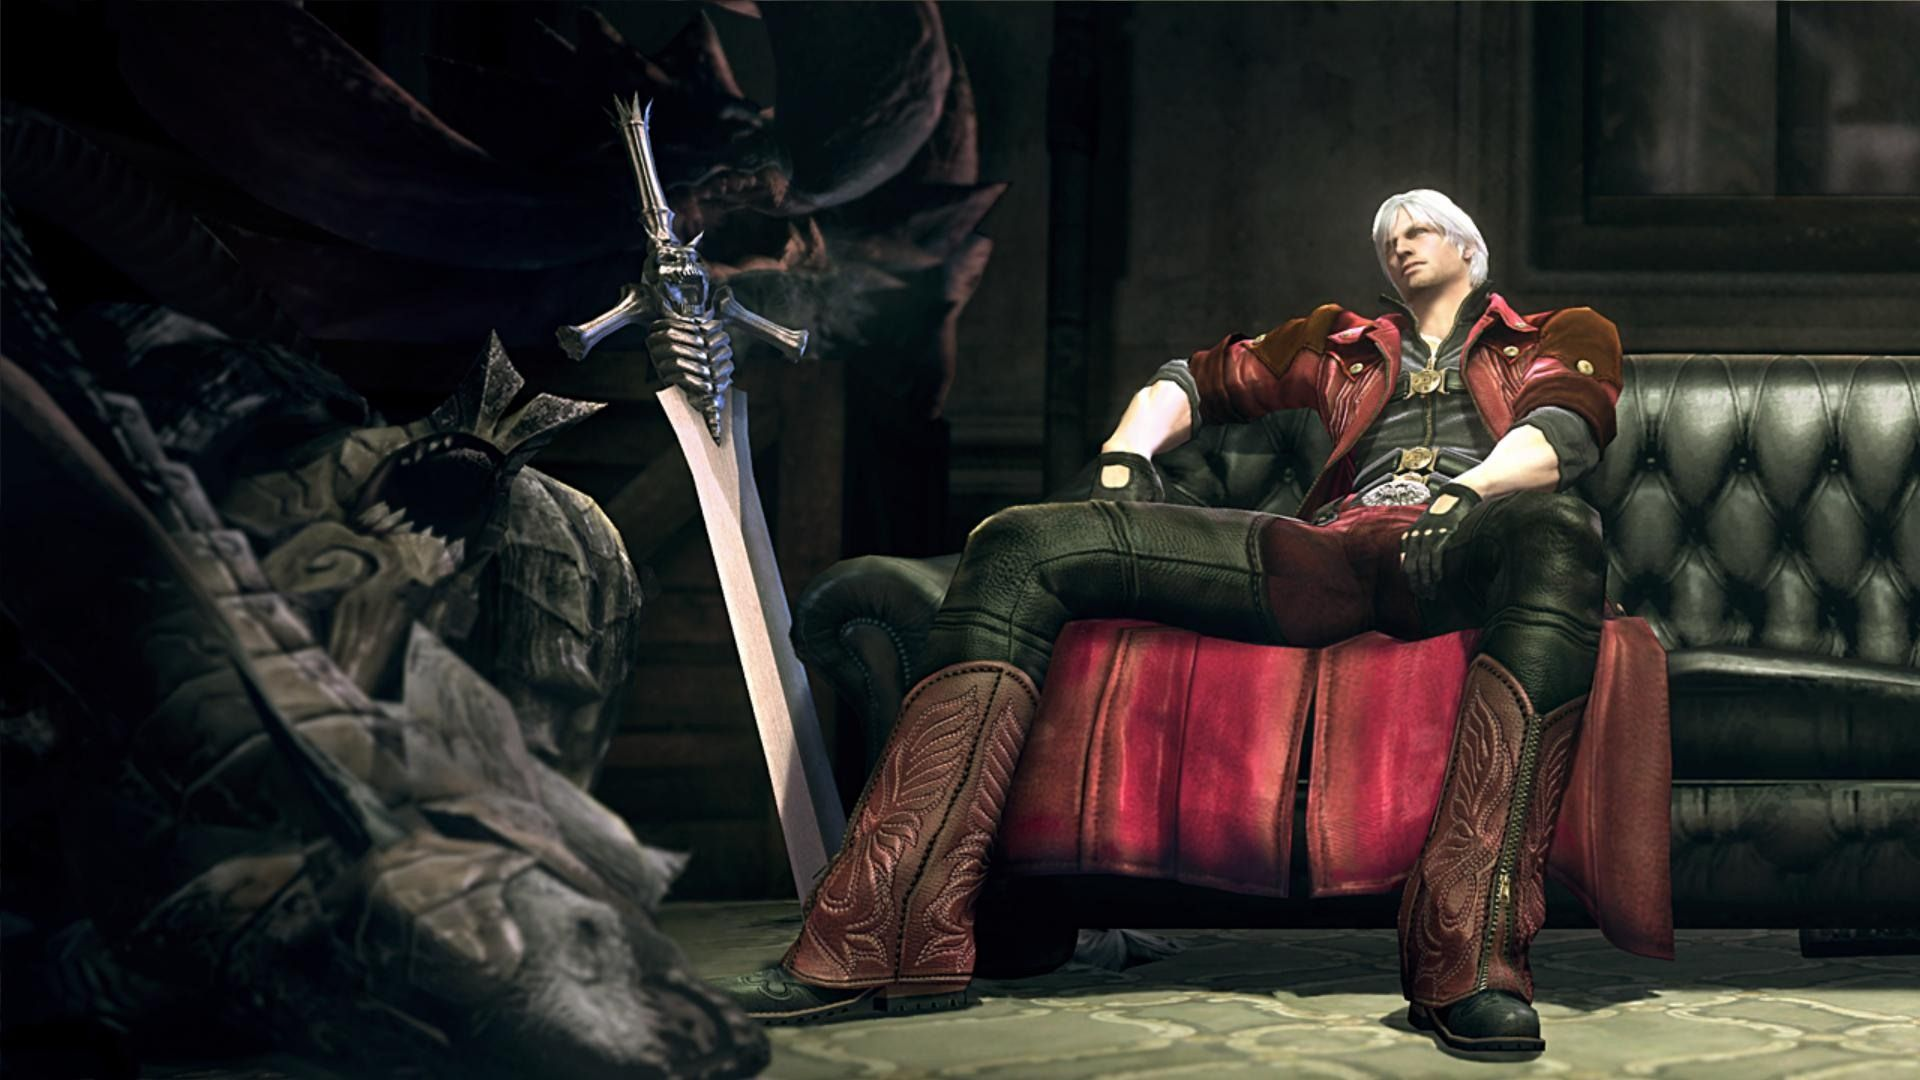 Devil may cry 5 wallpaper Group (86+)